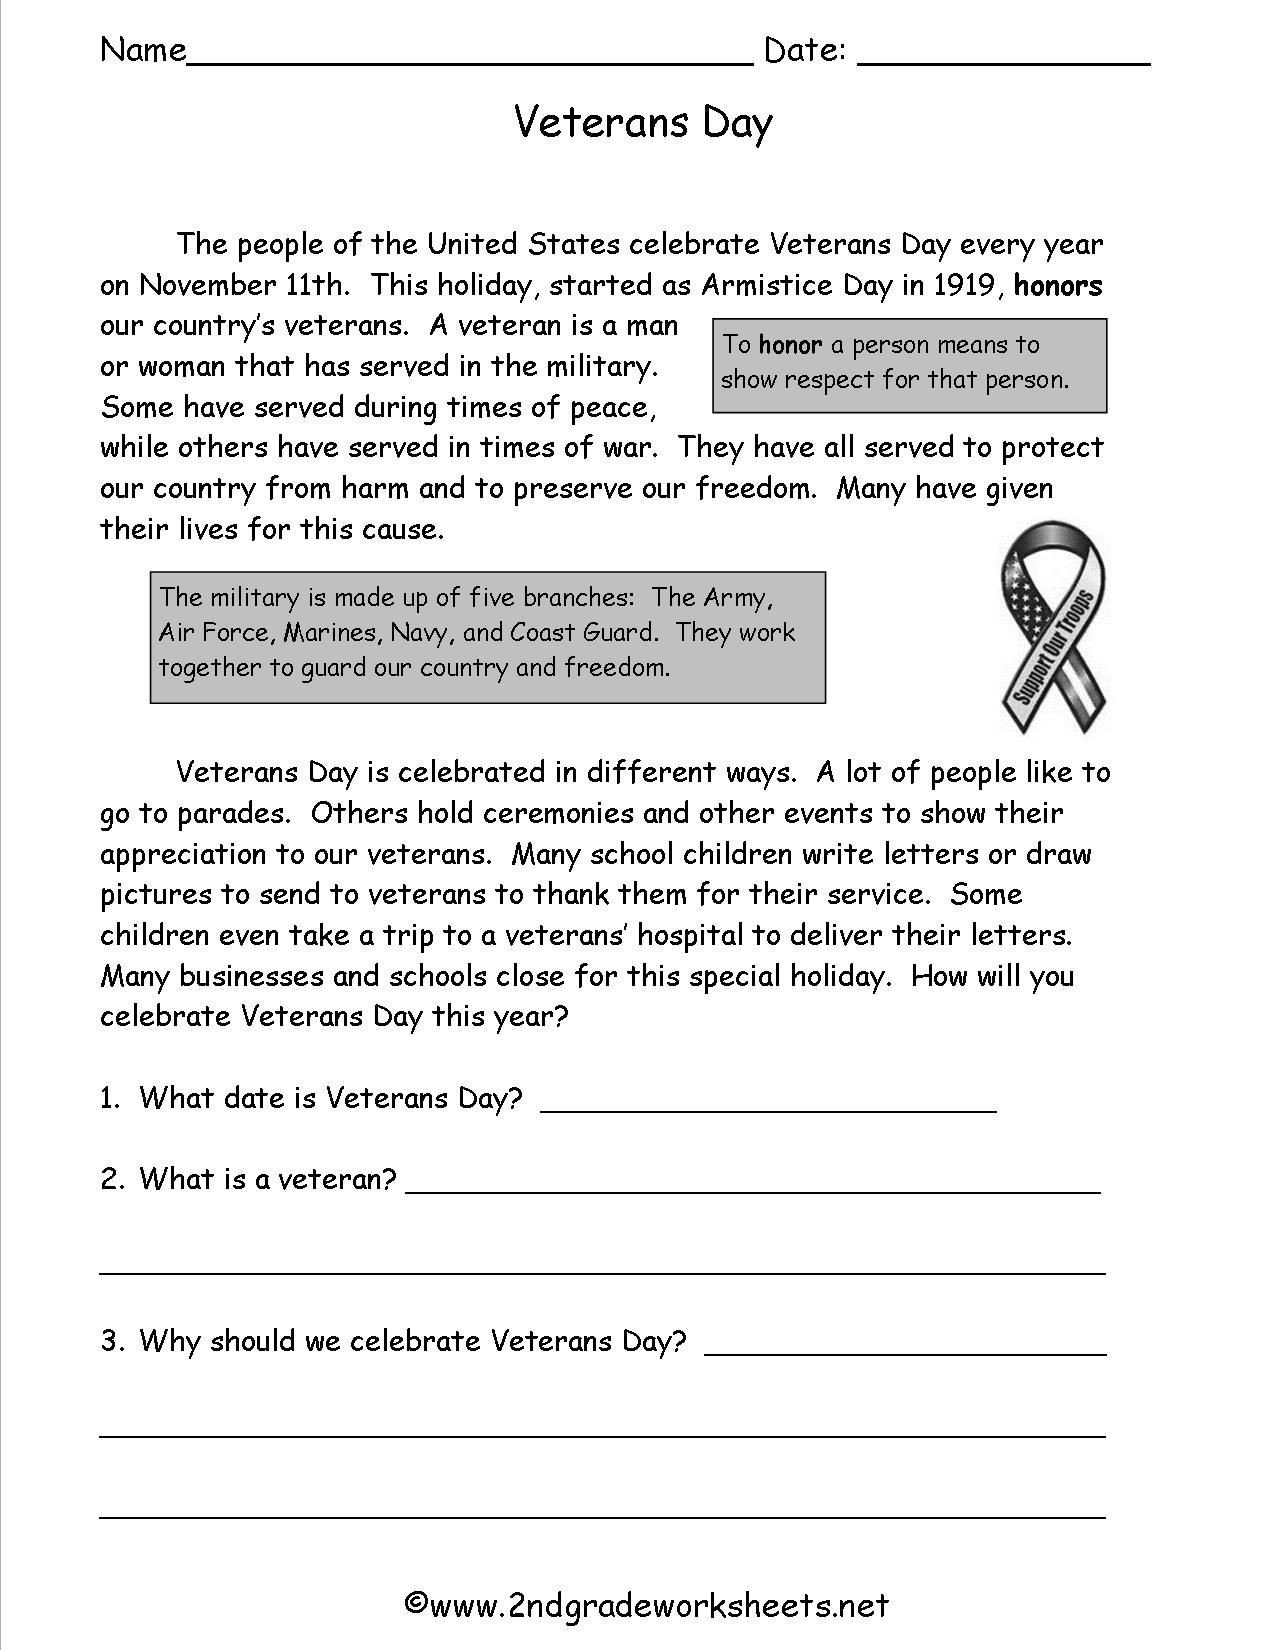 Memorial Day Reading Comprehension Worksheets Honoring Our Veterans Worksheet Answers